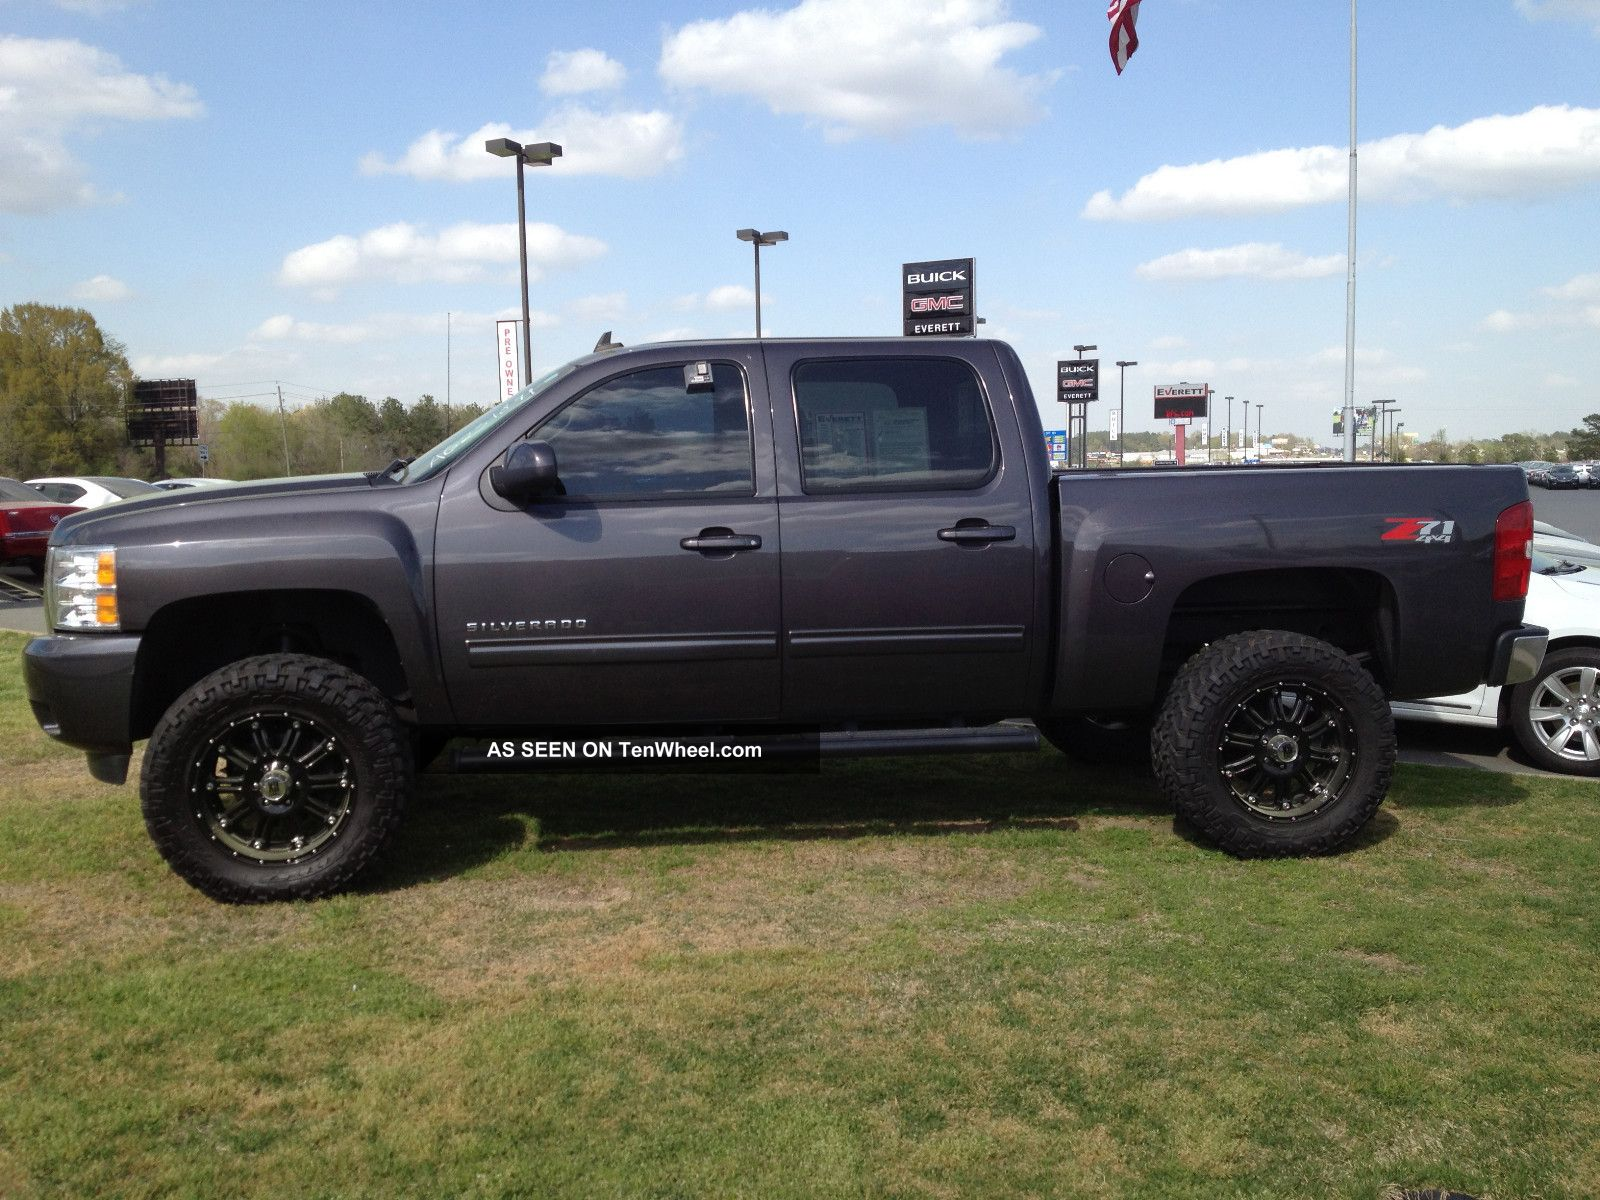 2010 chevrolet silverado 1500 ltz crew cab pickup 4 door 5 3l. Black Bedroom Furniture Sets. Home Design Ideas